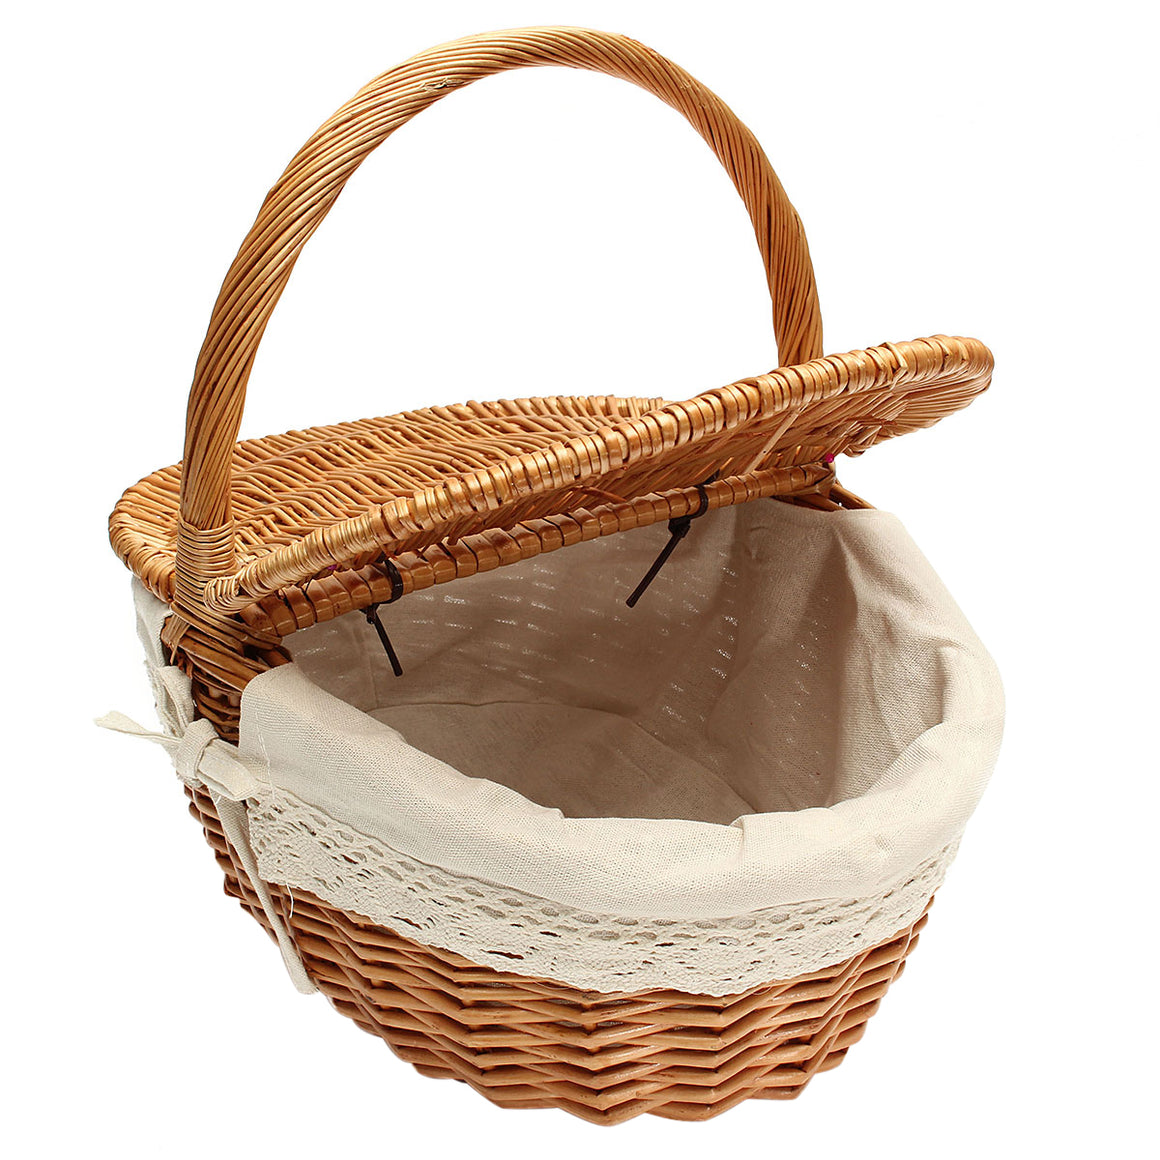 Wicker Willow Picnic Basket Hamper Shopping Basket with Lid and Handle and White Liner for Camping